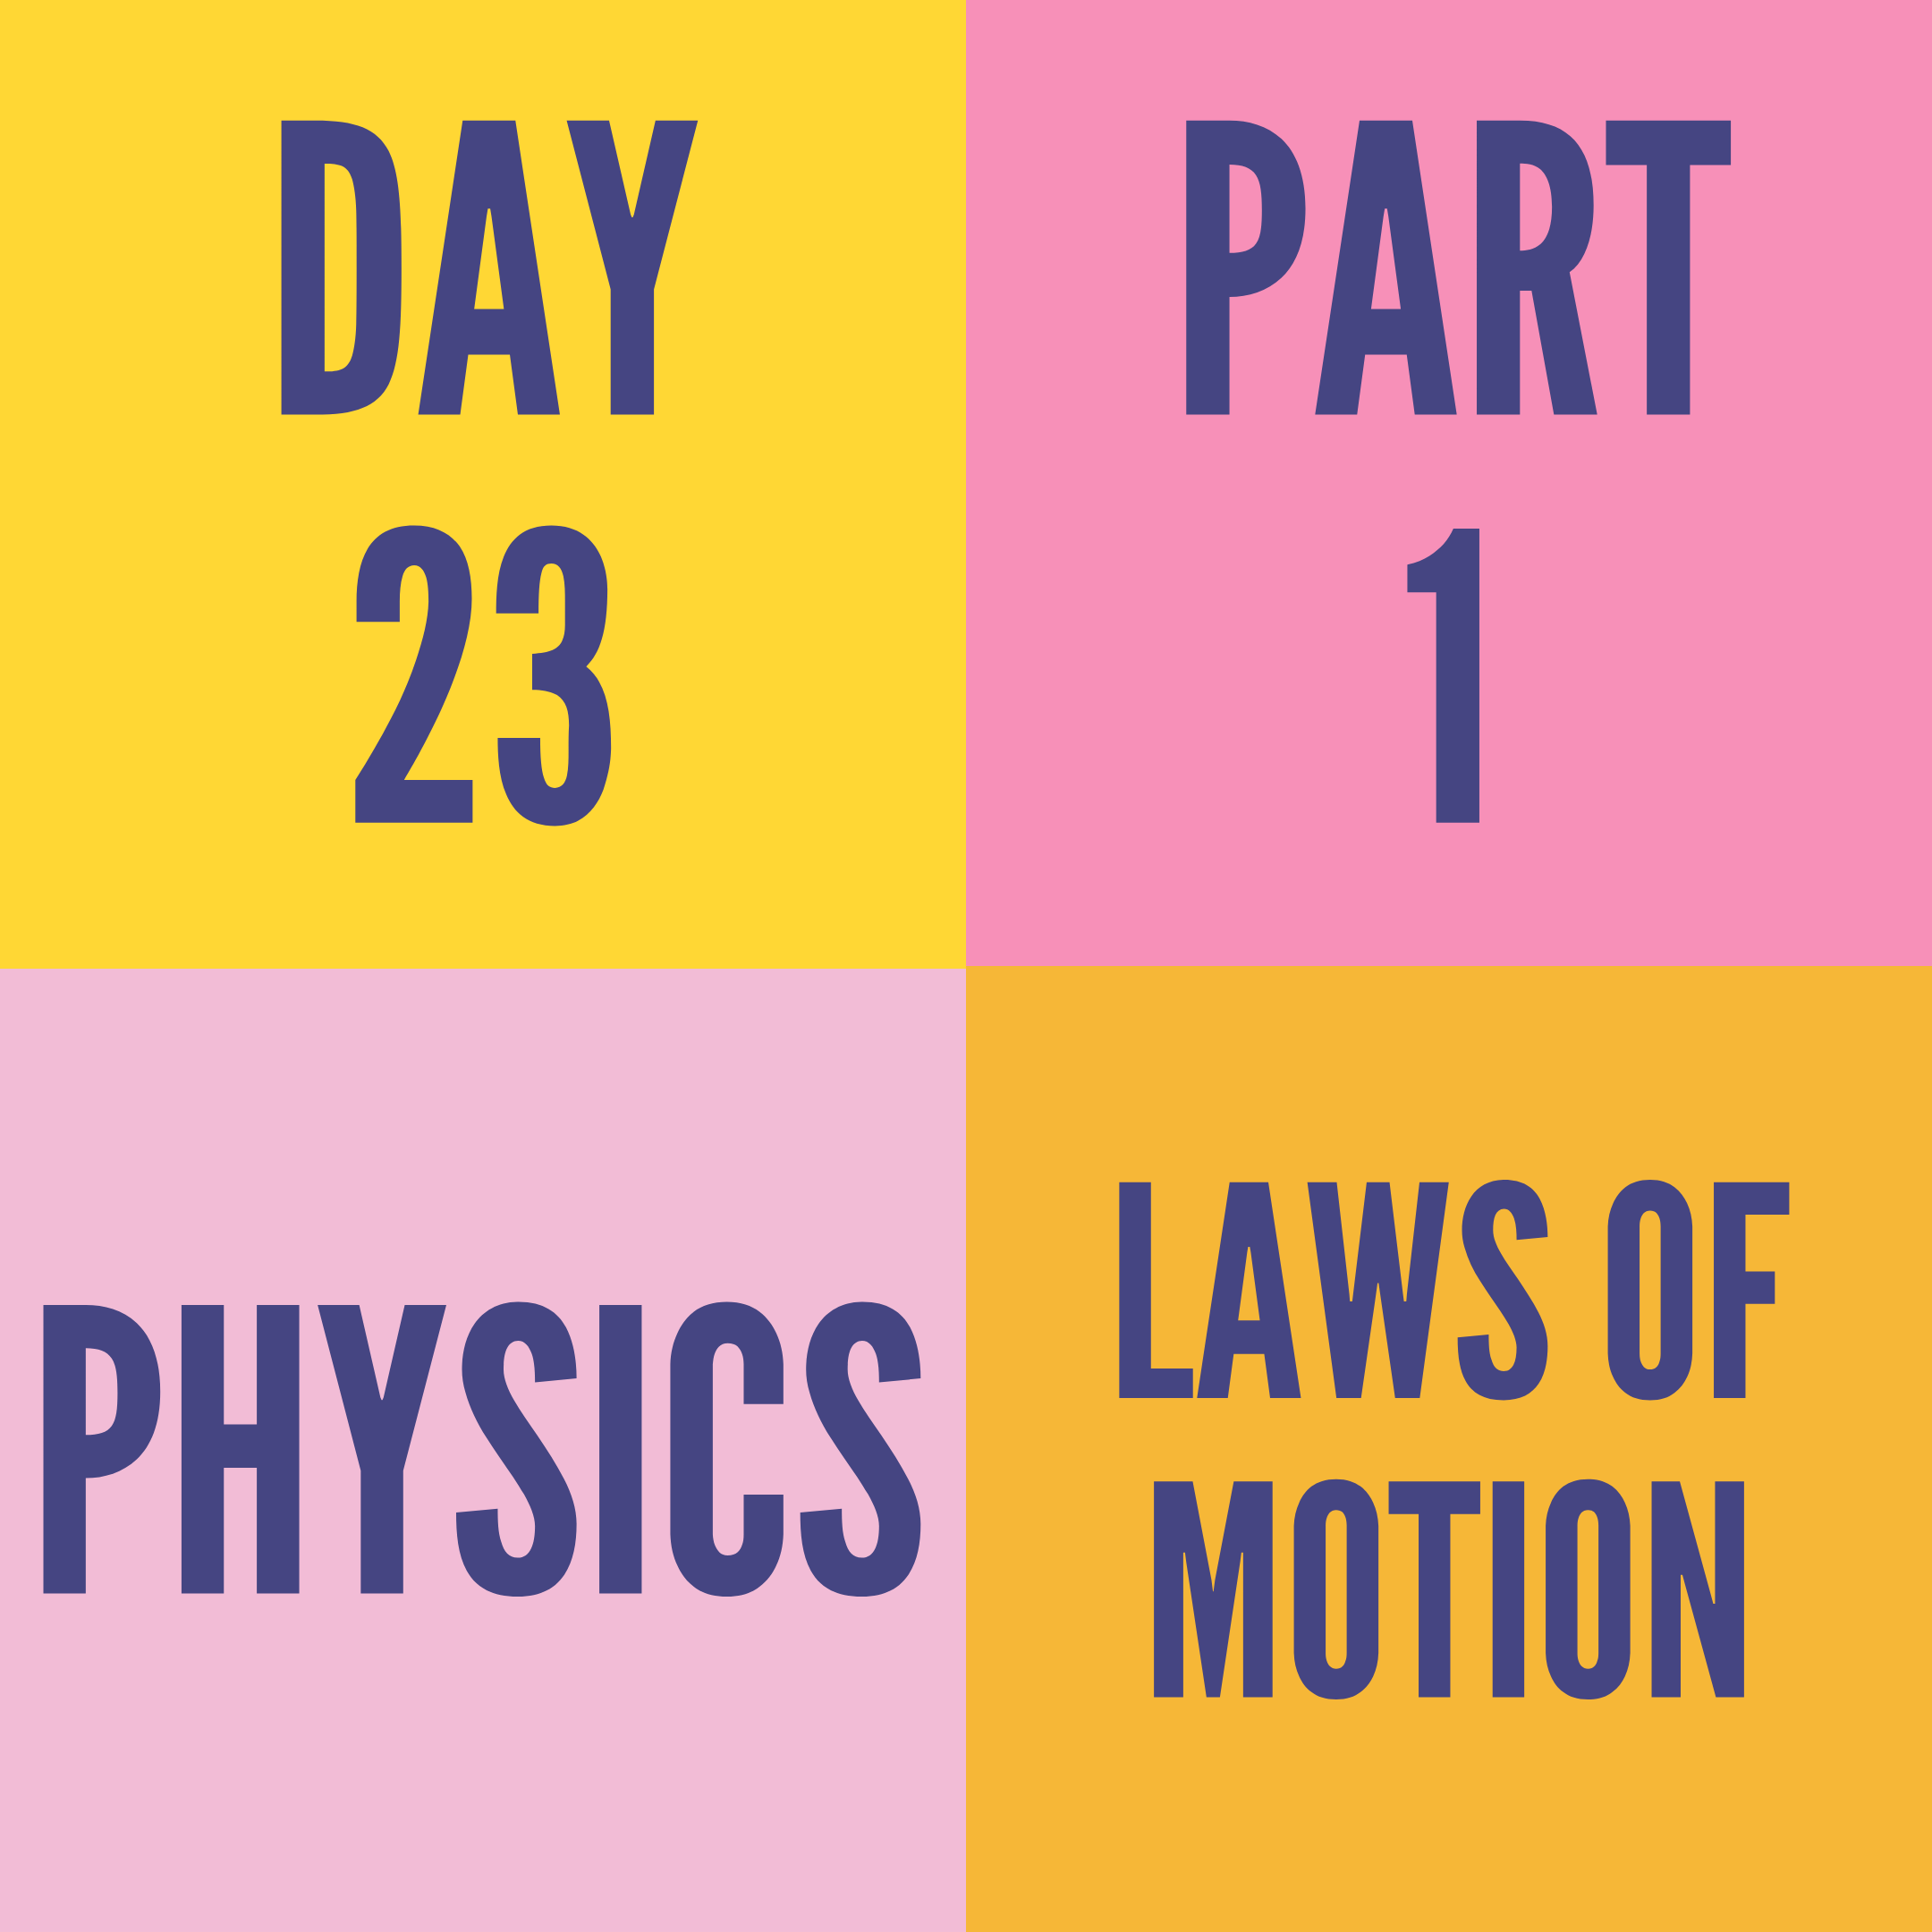 DAY-23 PART-1 LAWS OF MOTION